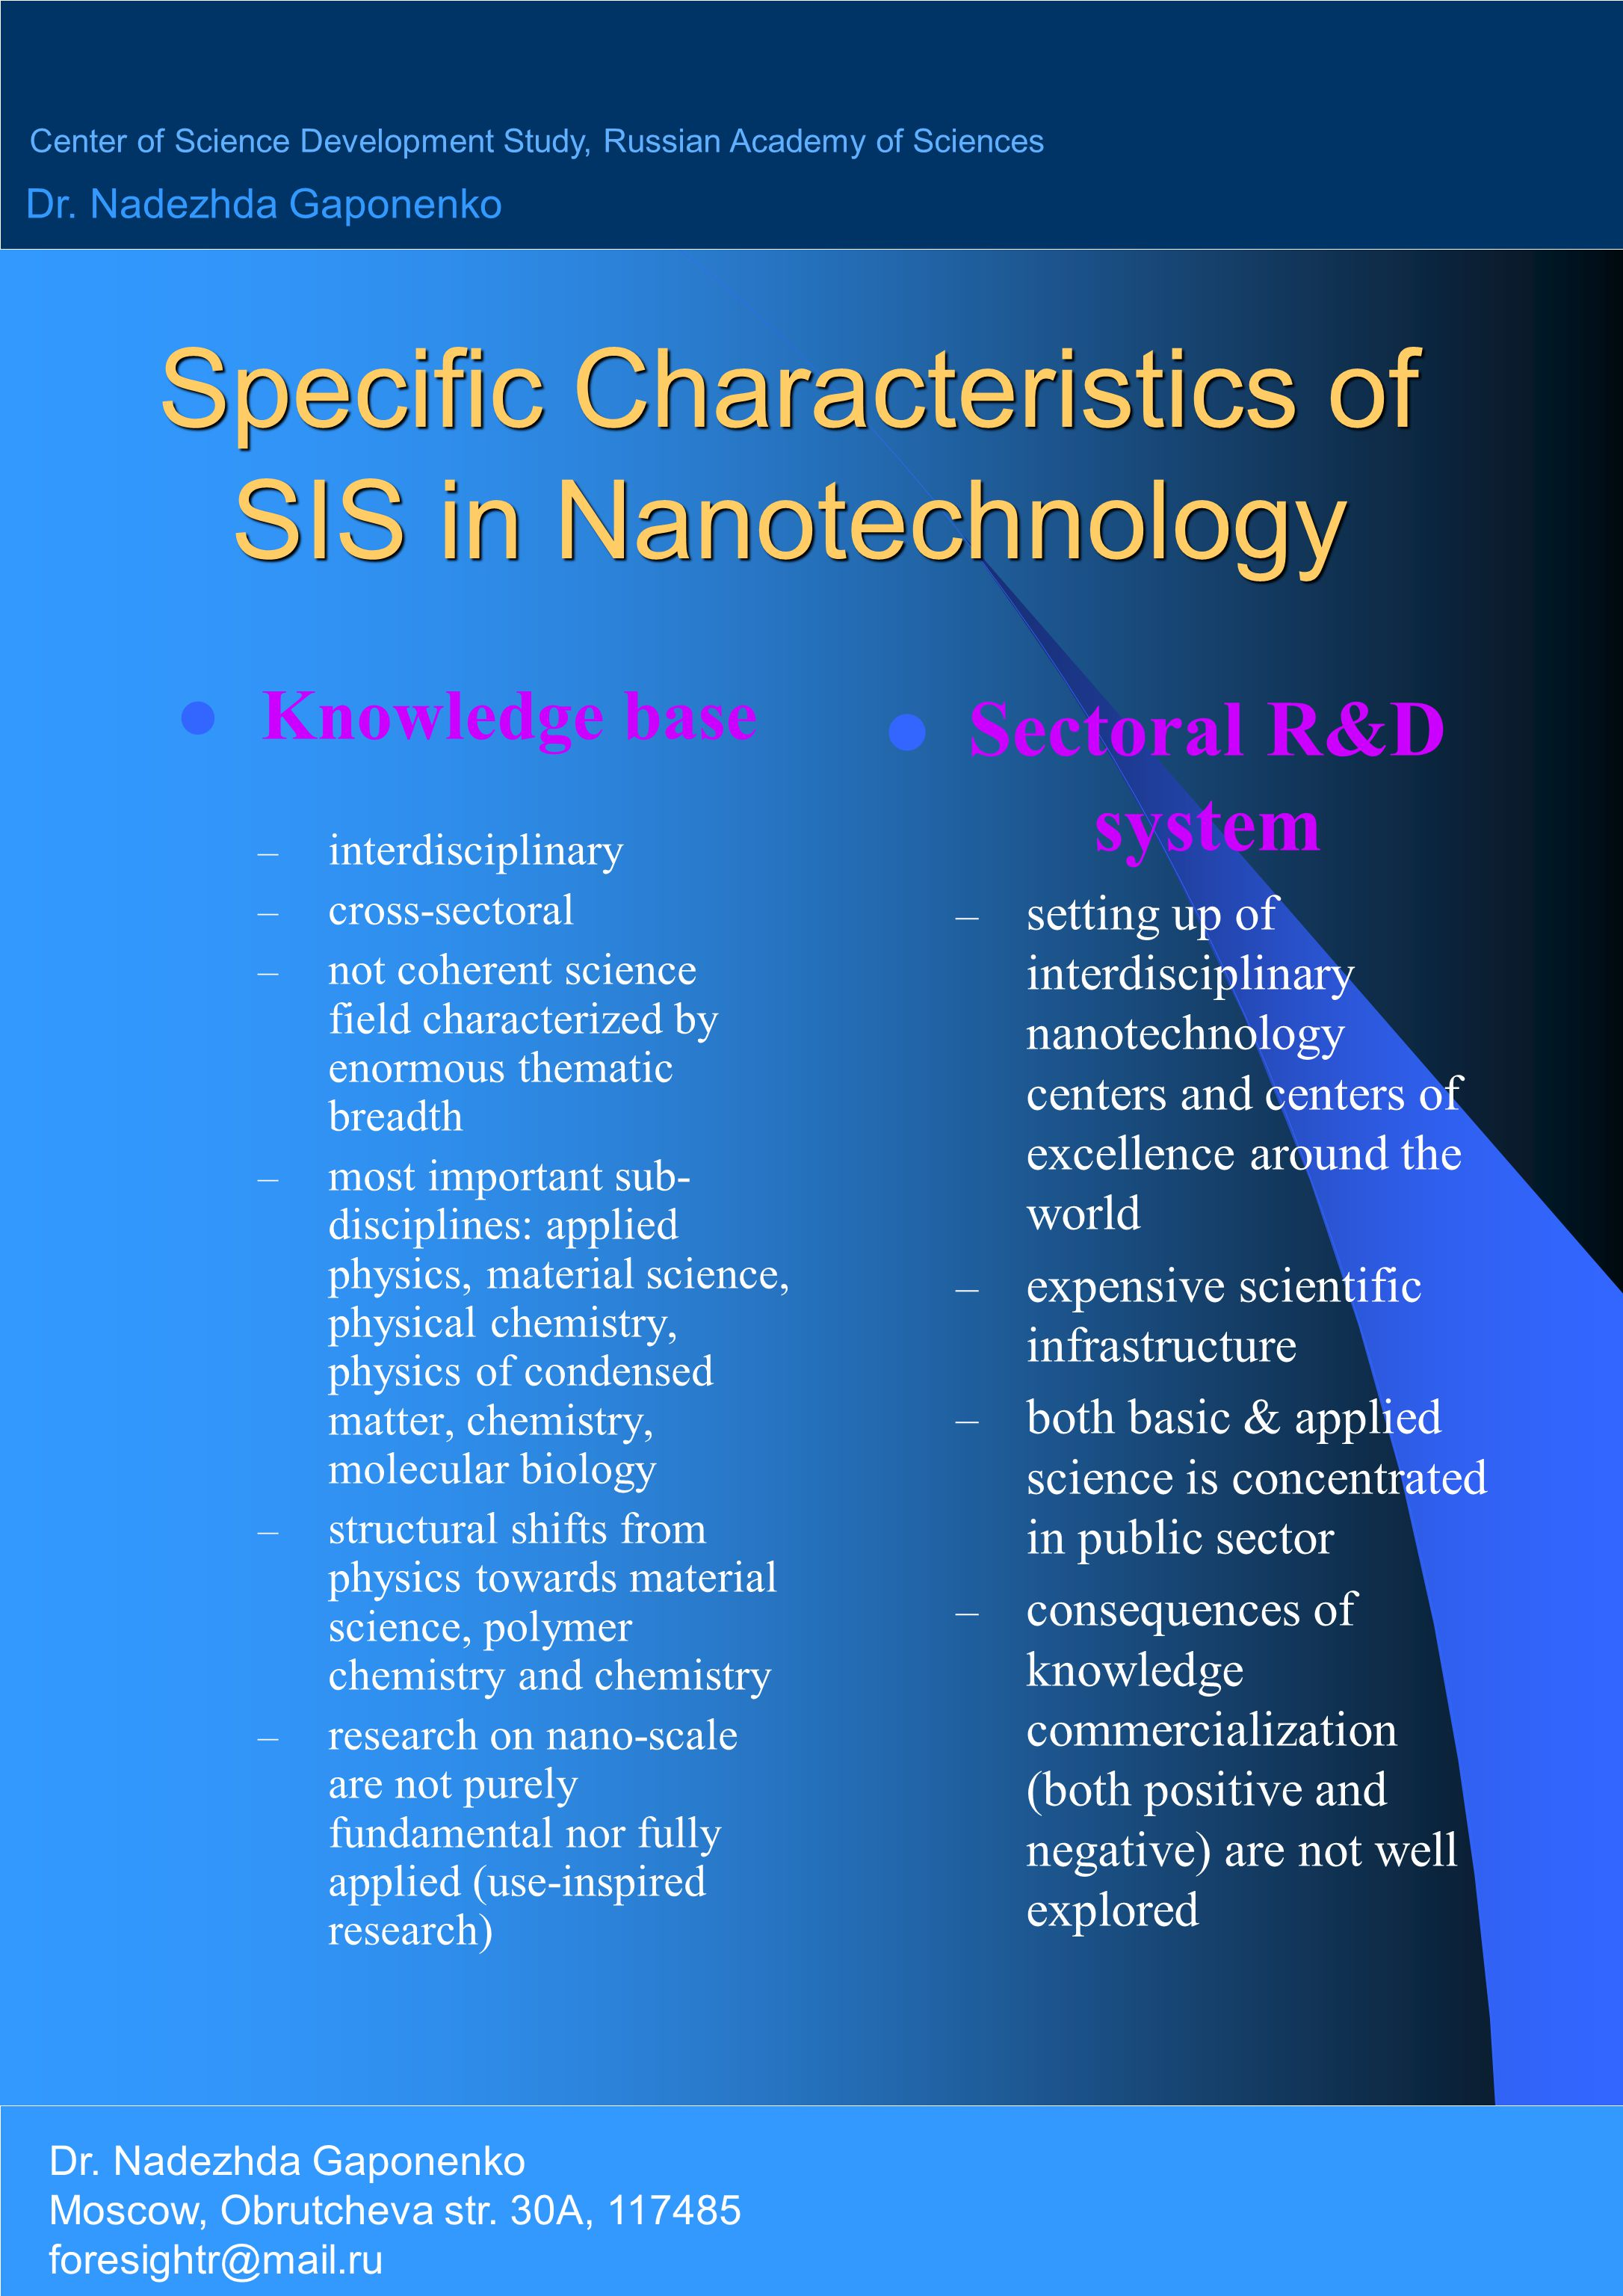 Specific Characteristics of SIS in Nanotechnology Knowledge base – interdisciplinary – cross-sectoral – not coherent science field characterized by enormous thematic breadth – most important sub- disciplines: applied physics, material science, physical chemistry, physics of condensed matter, chemistry, molecular biology – structural shifts from physics towards material science, polymer chemistry and chemistry – research on nano-scale are not purely fundamental nor fully applied (use-inspired research) Sectoral R&D system – setting up of interdisciplinary nanotechnology centers and centers of excellence around the world – expensive scientific infrastructure – both basic & applied science is concentrated in public sector – consequences of knowledge commercialization (both positive and negative) are not well explored Center of Science Development Study, Russian Academy of Sciences Dr.